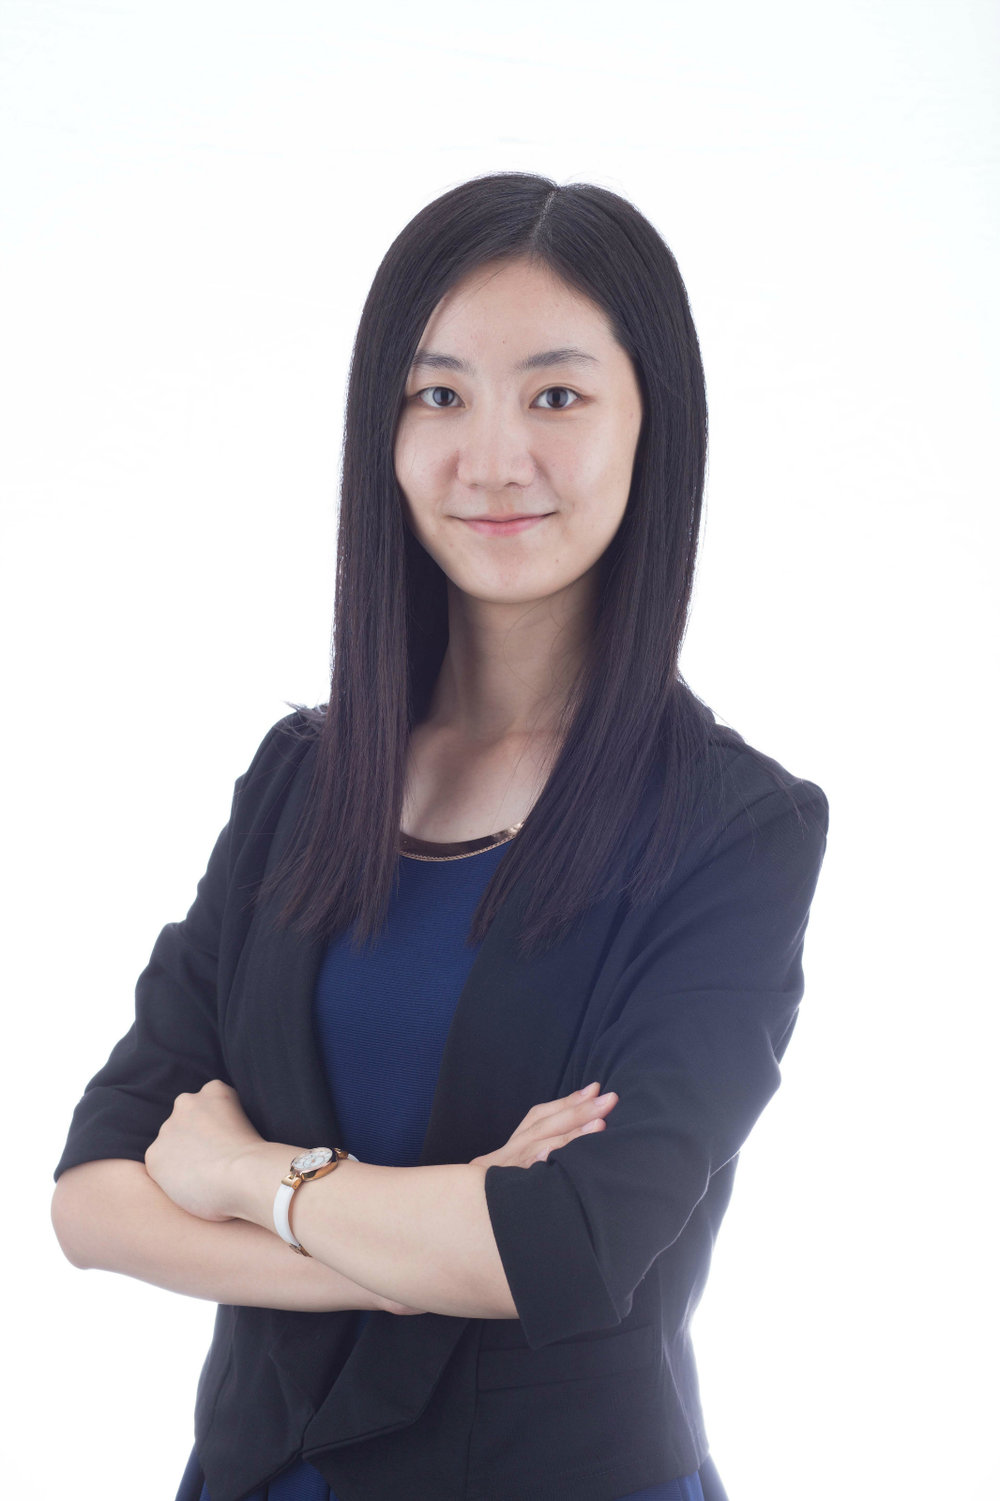 Yangyang Yang, President Master's Student in Integrated Design & Management